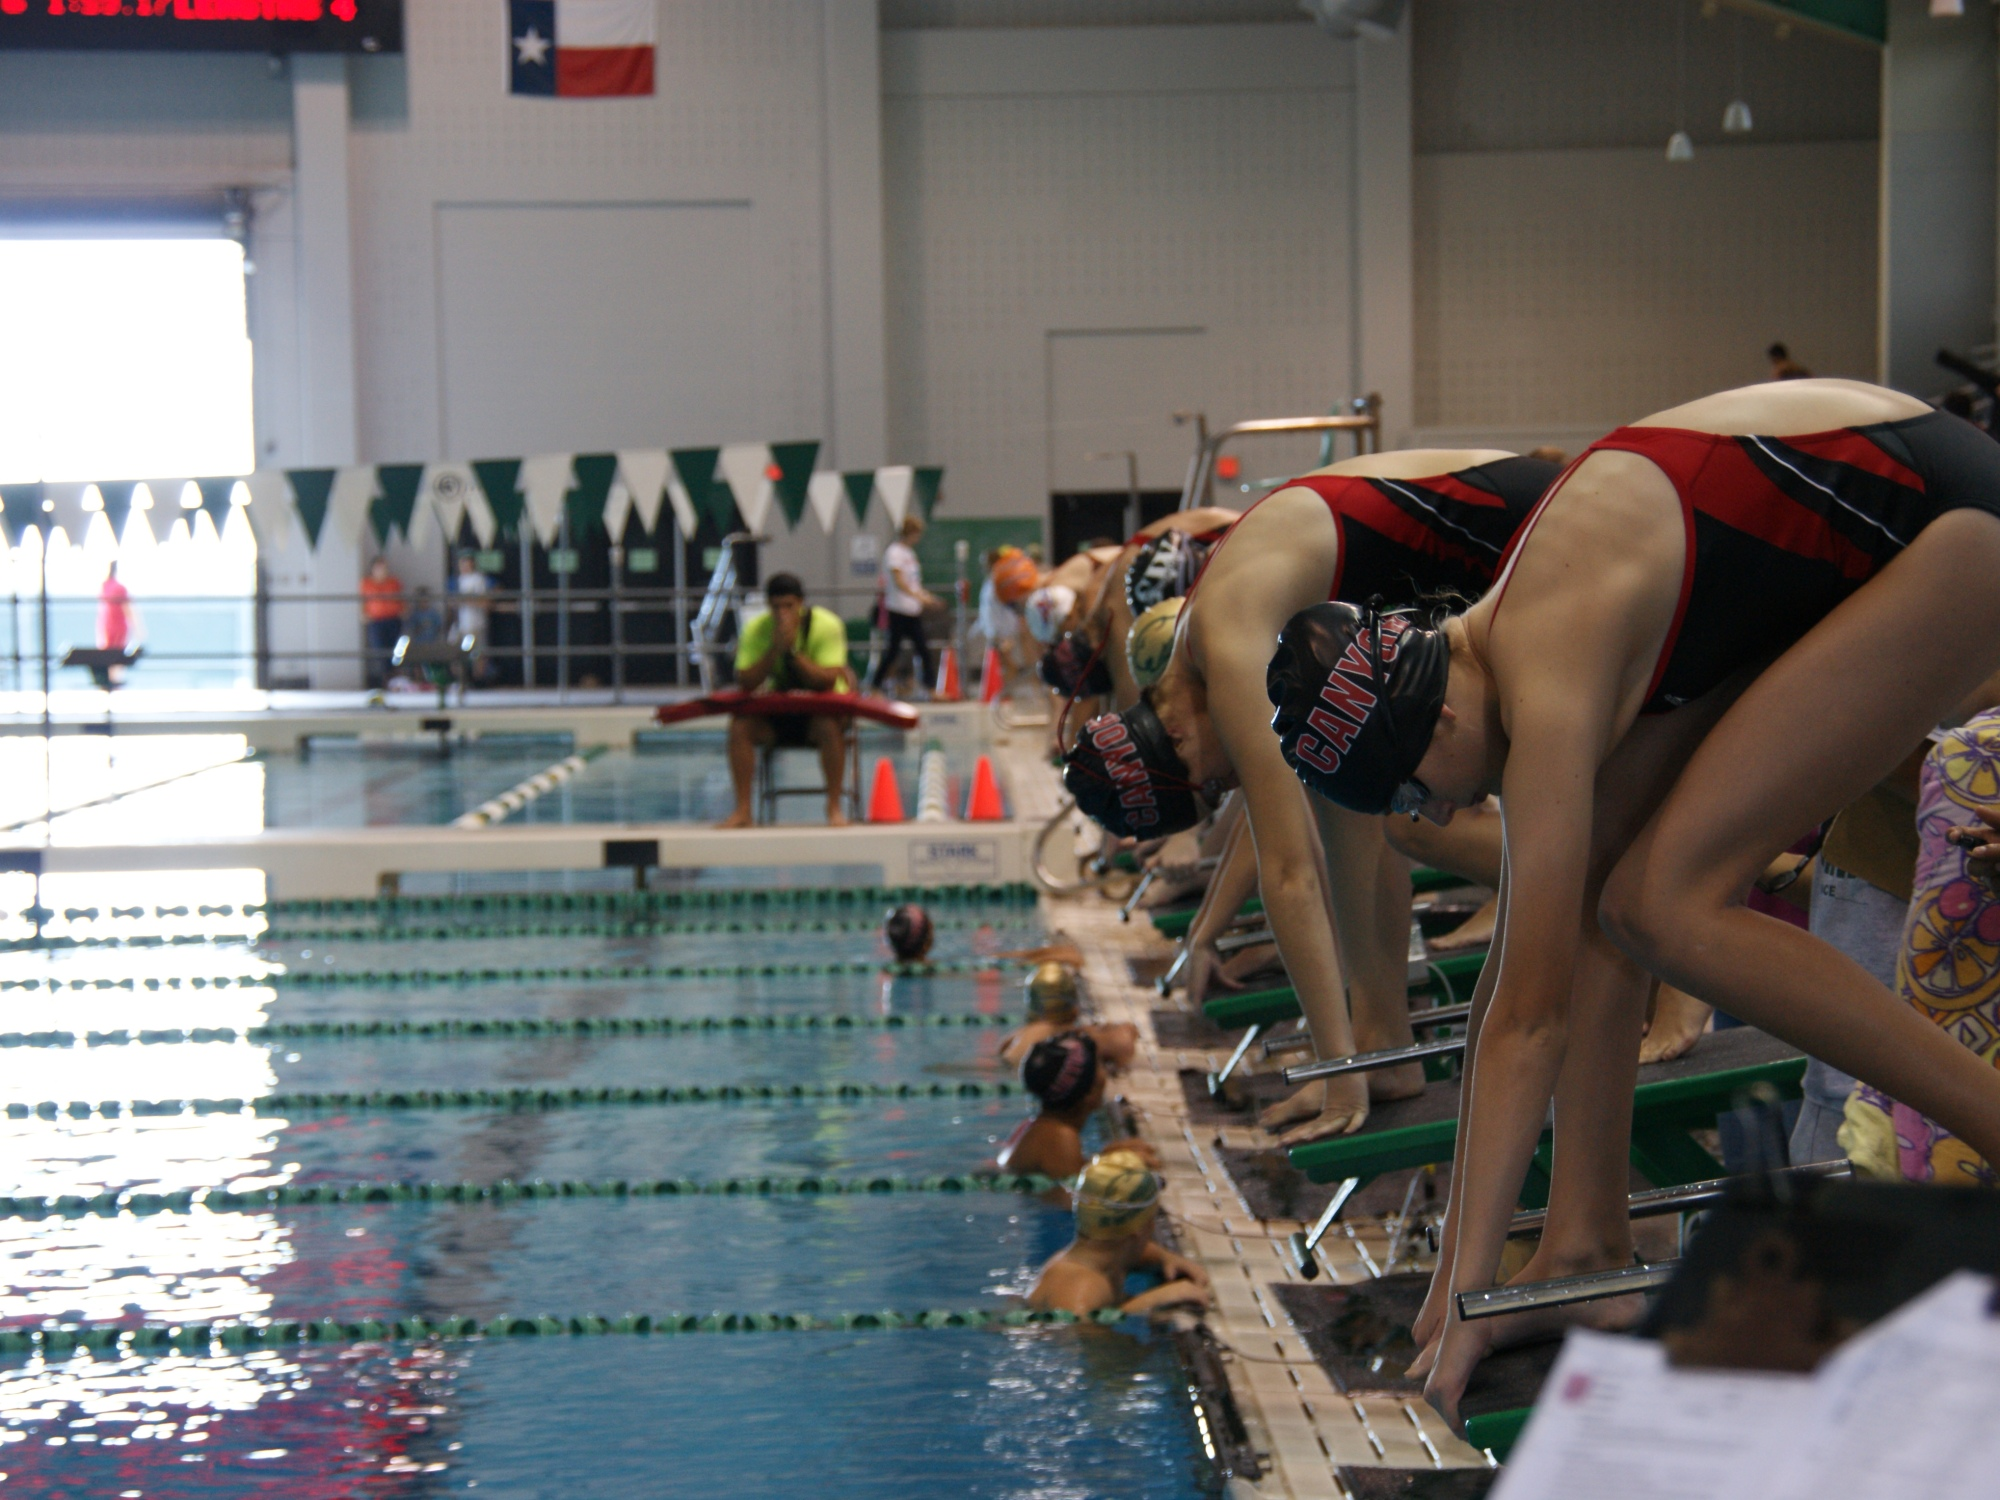 Swimming participants prepare themselves in their swimming position to dive in at Palo Alto's Aquatic Center.